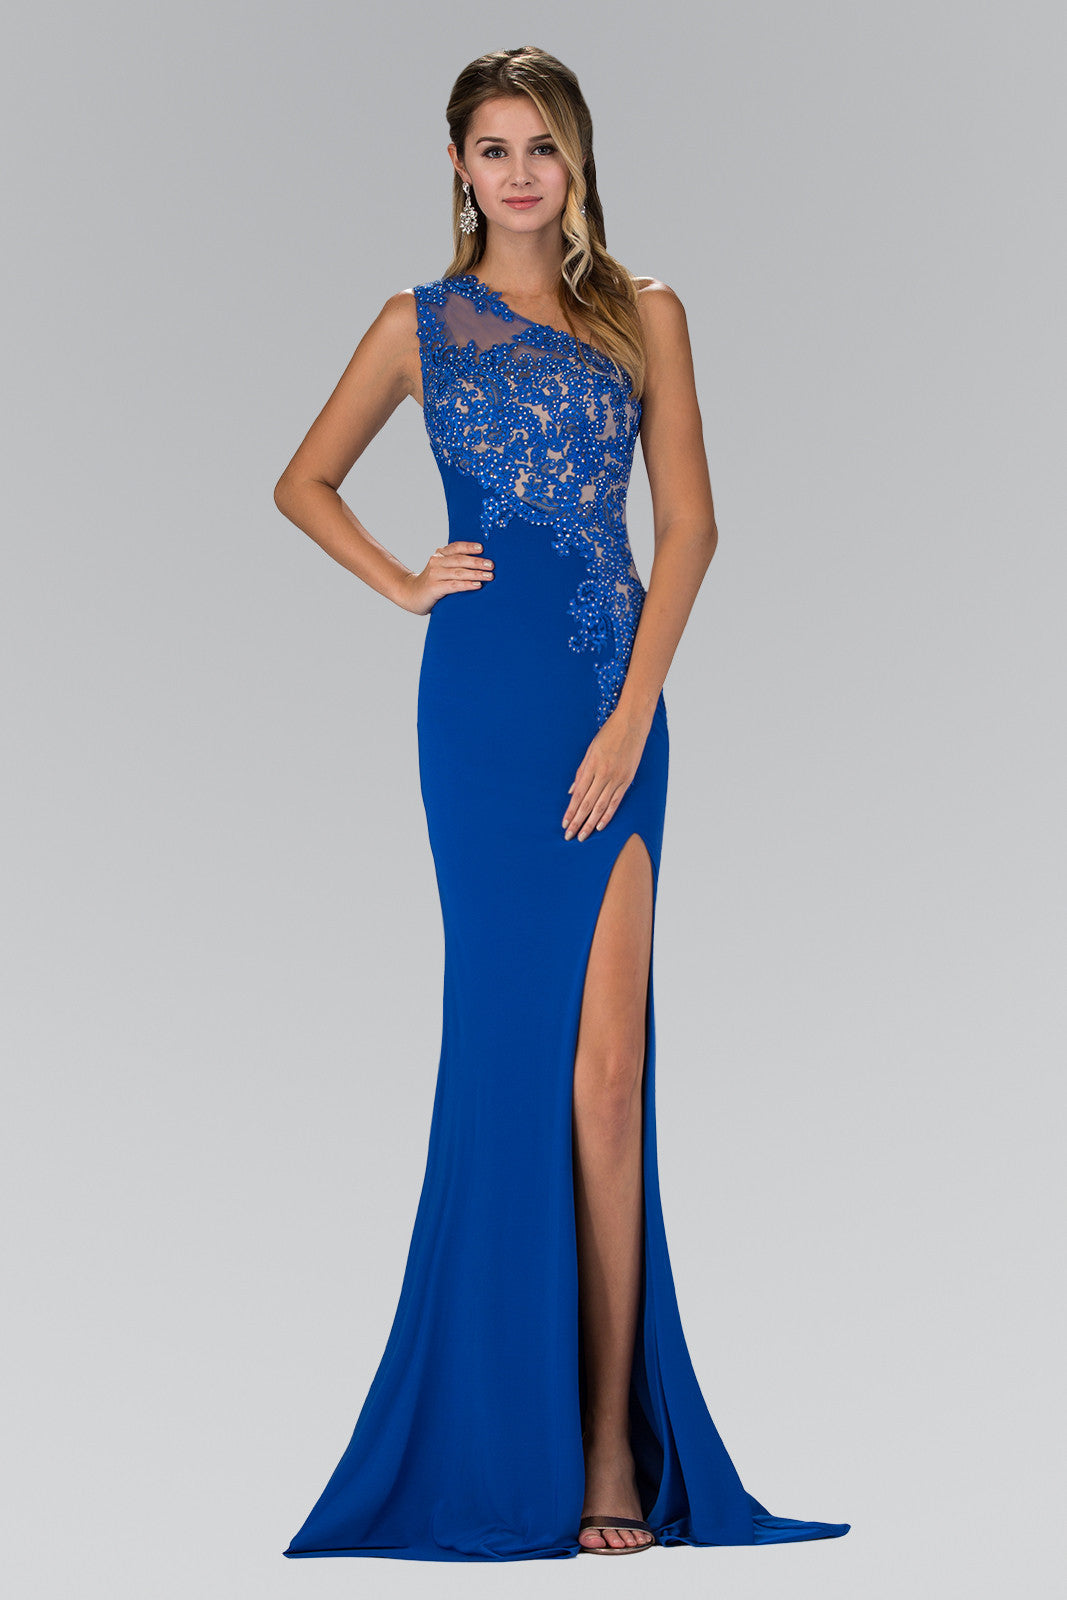 347e36602d6 Sexy one strap fitted prom dress with high slit 103#GL2066 - Simply Fab  Dress ...